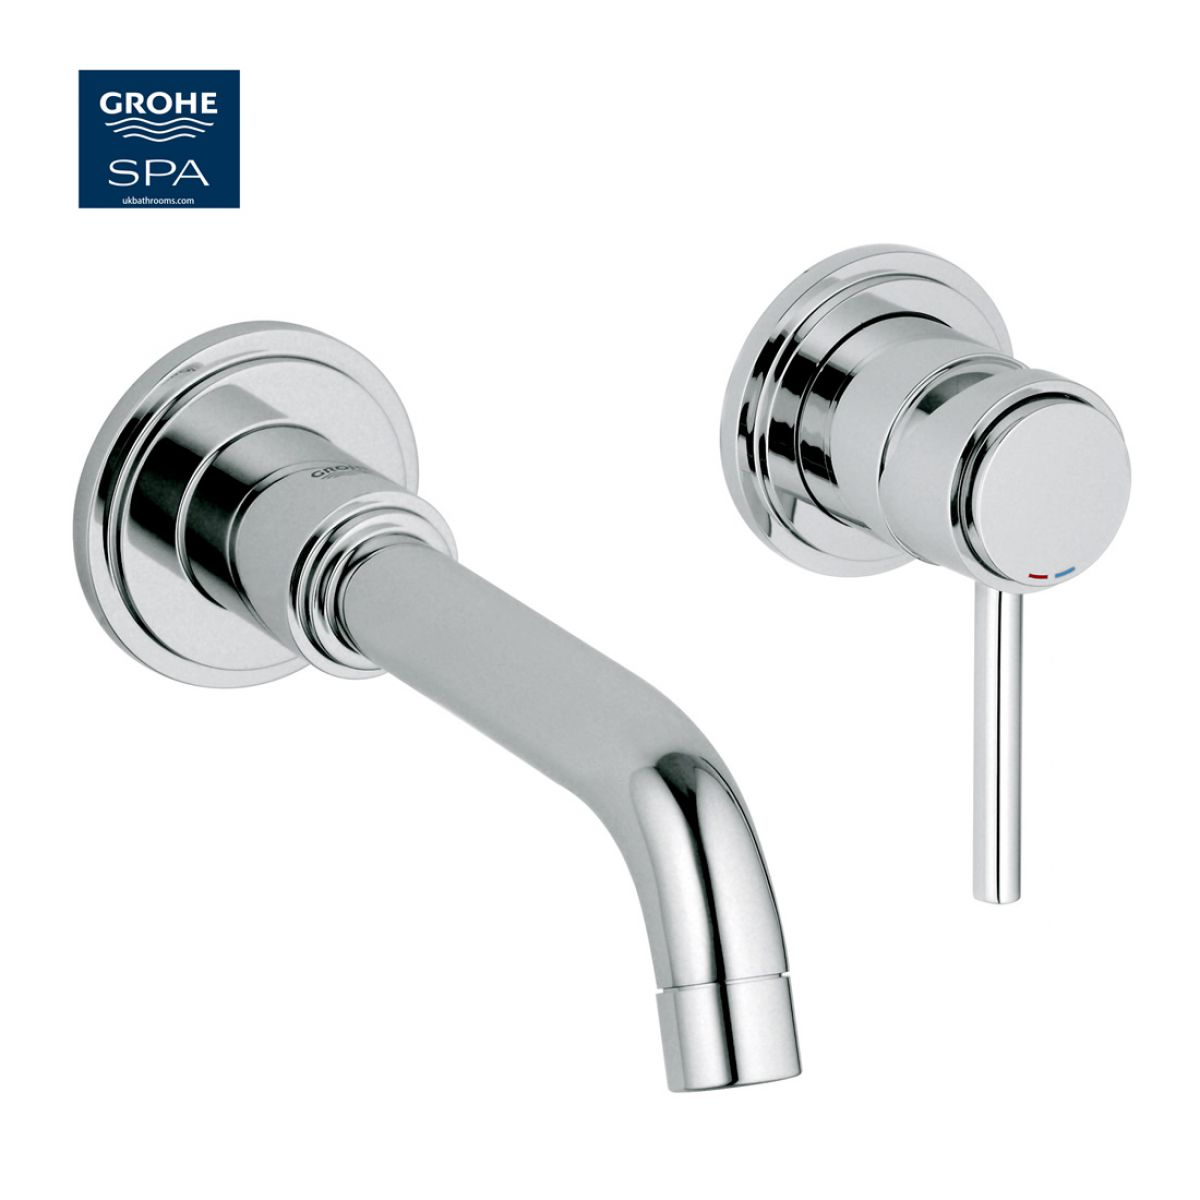 Grohe Atrio C Spout 2 Hole Wall Mounted Basin Mixer